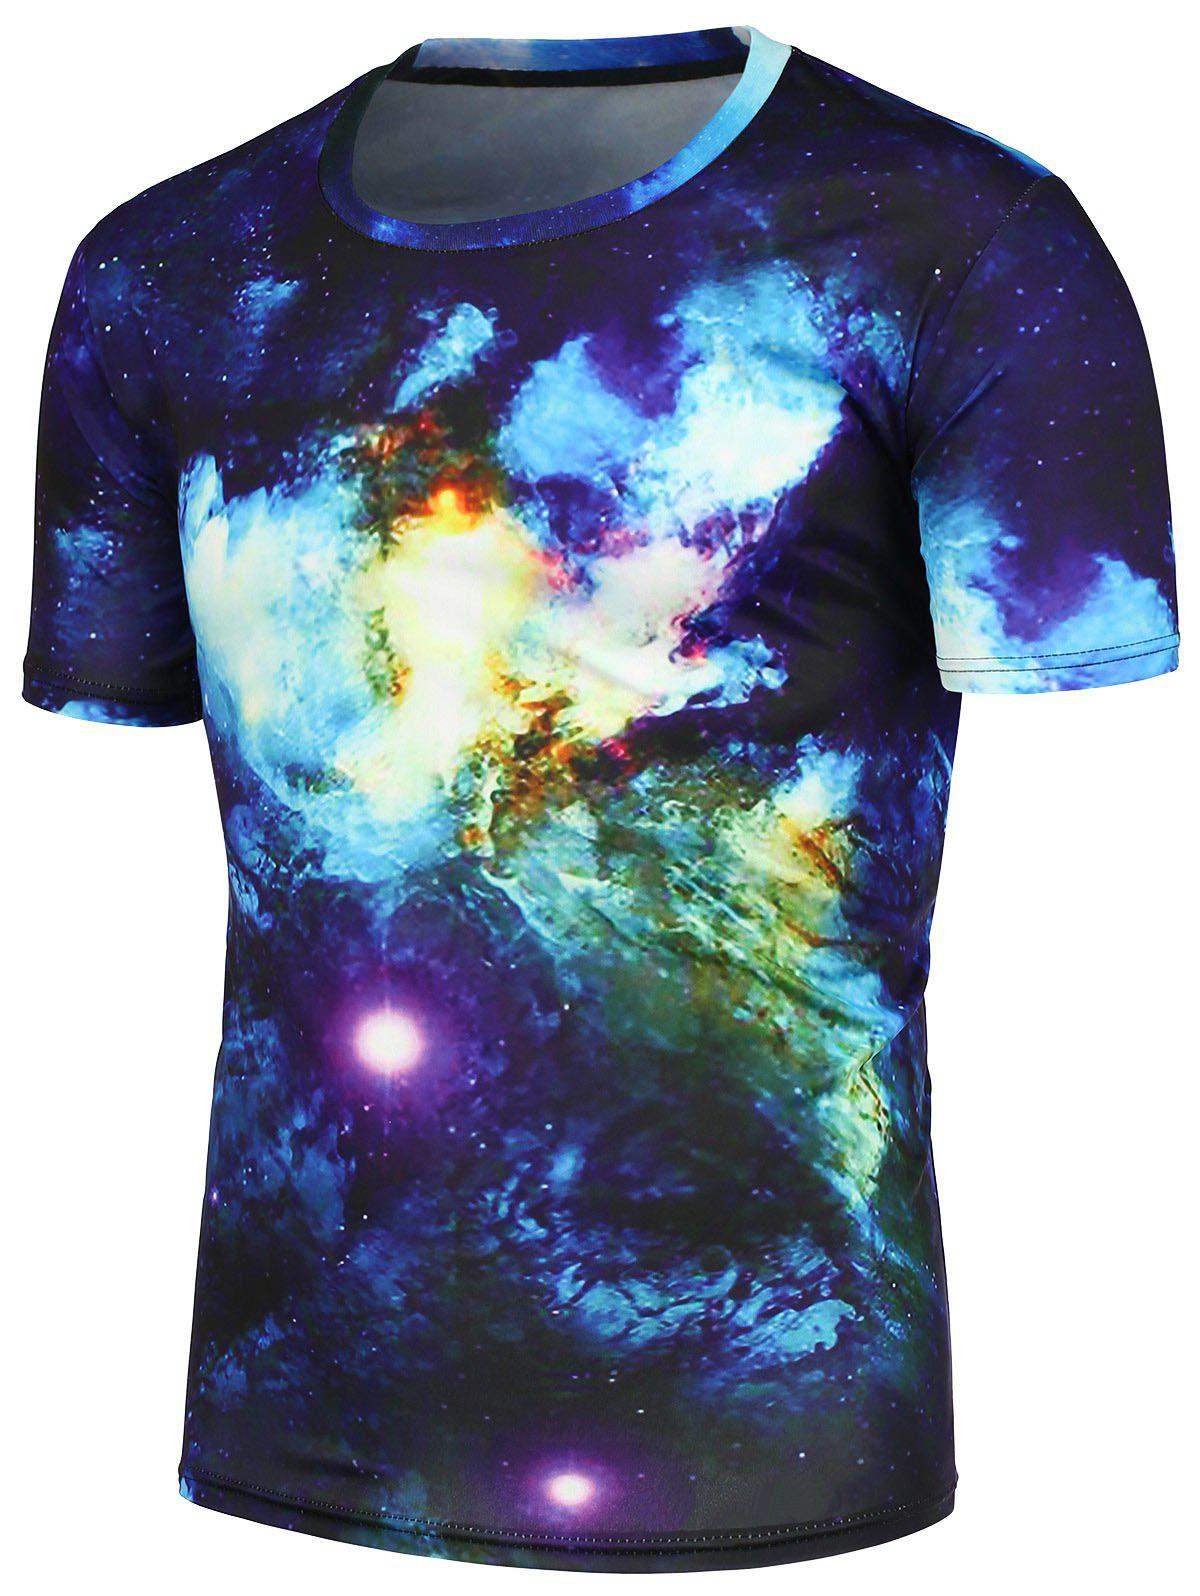 nebula haze in t shirt - photo #35